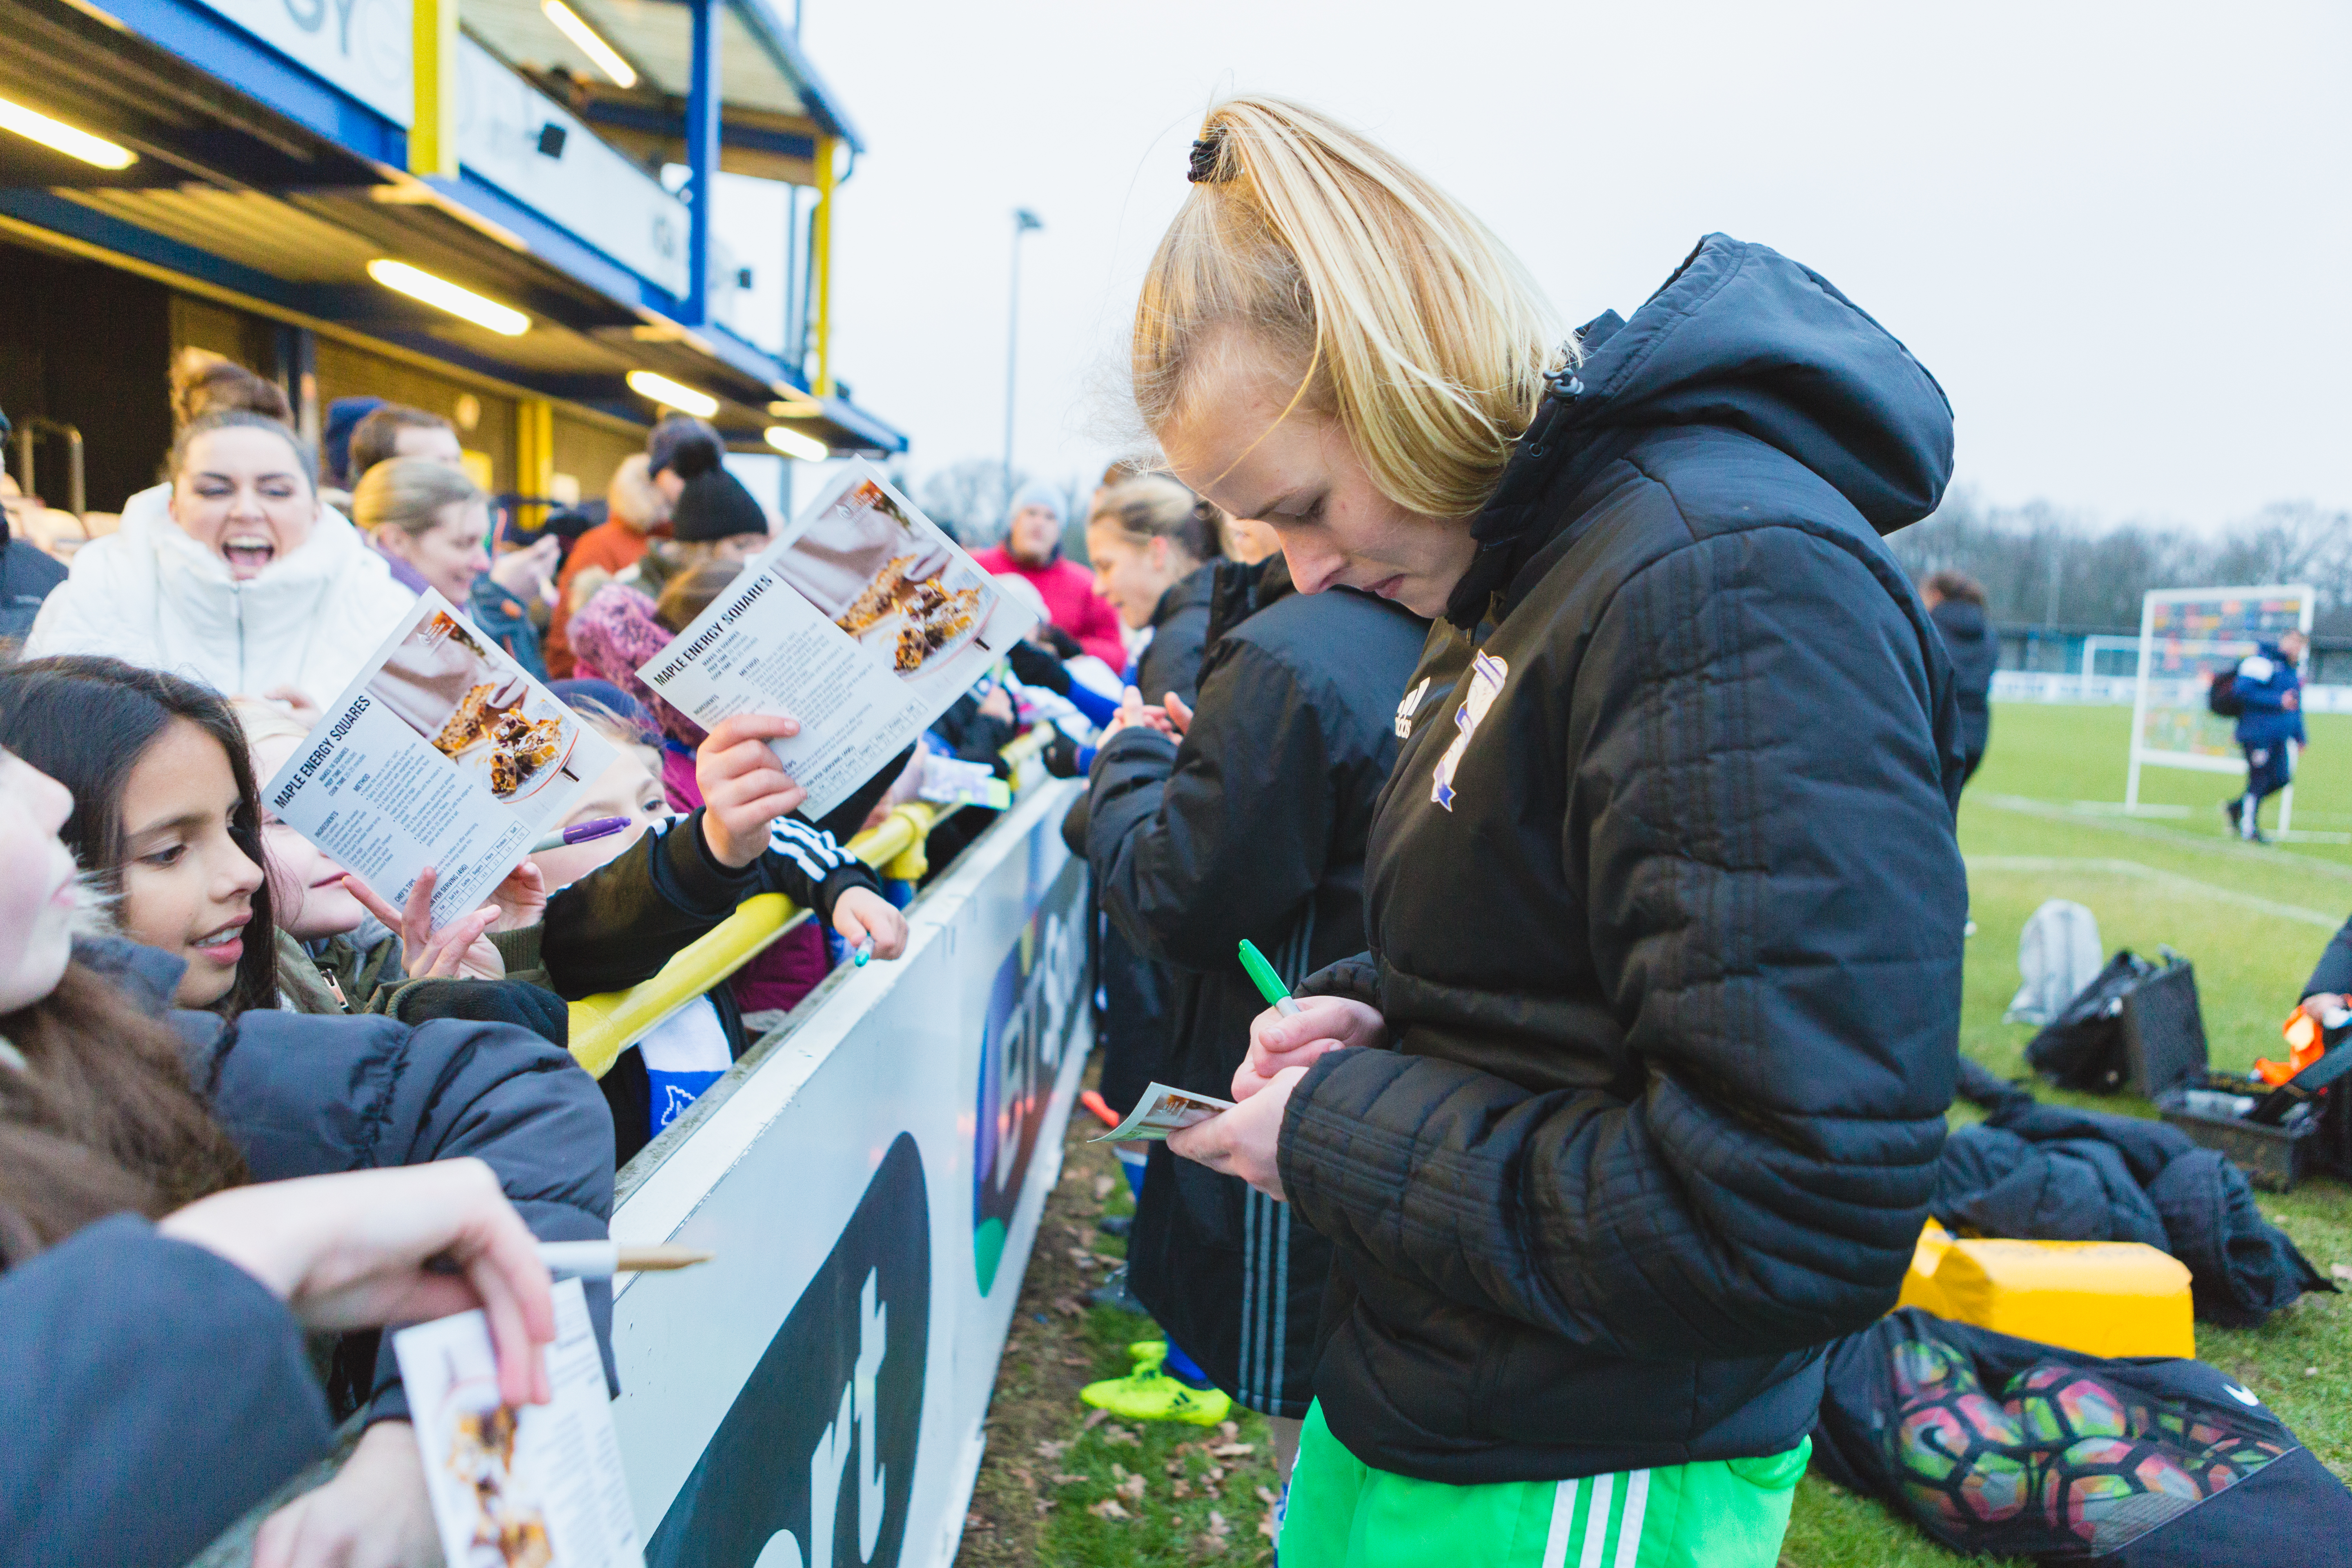 Birmingham City Ladies FC players signing autographs for young fans